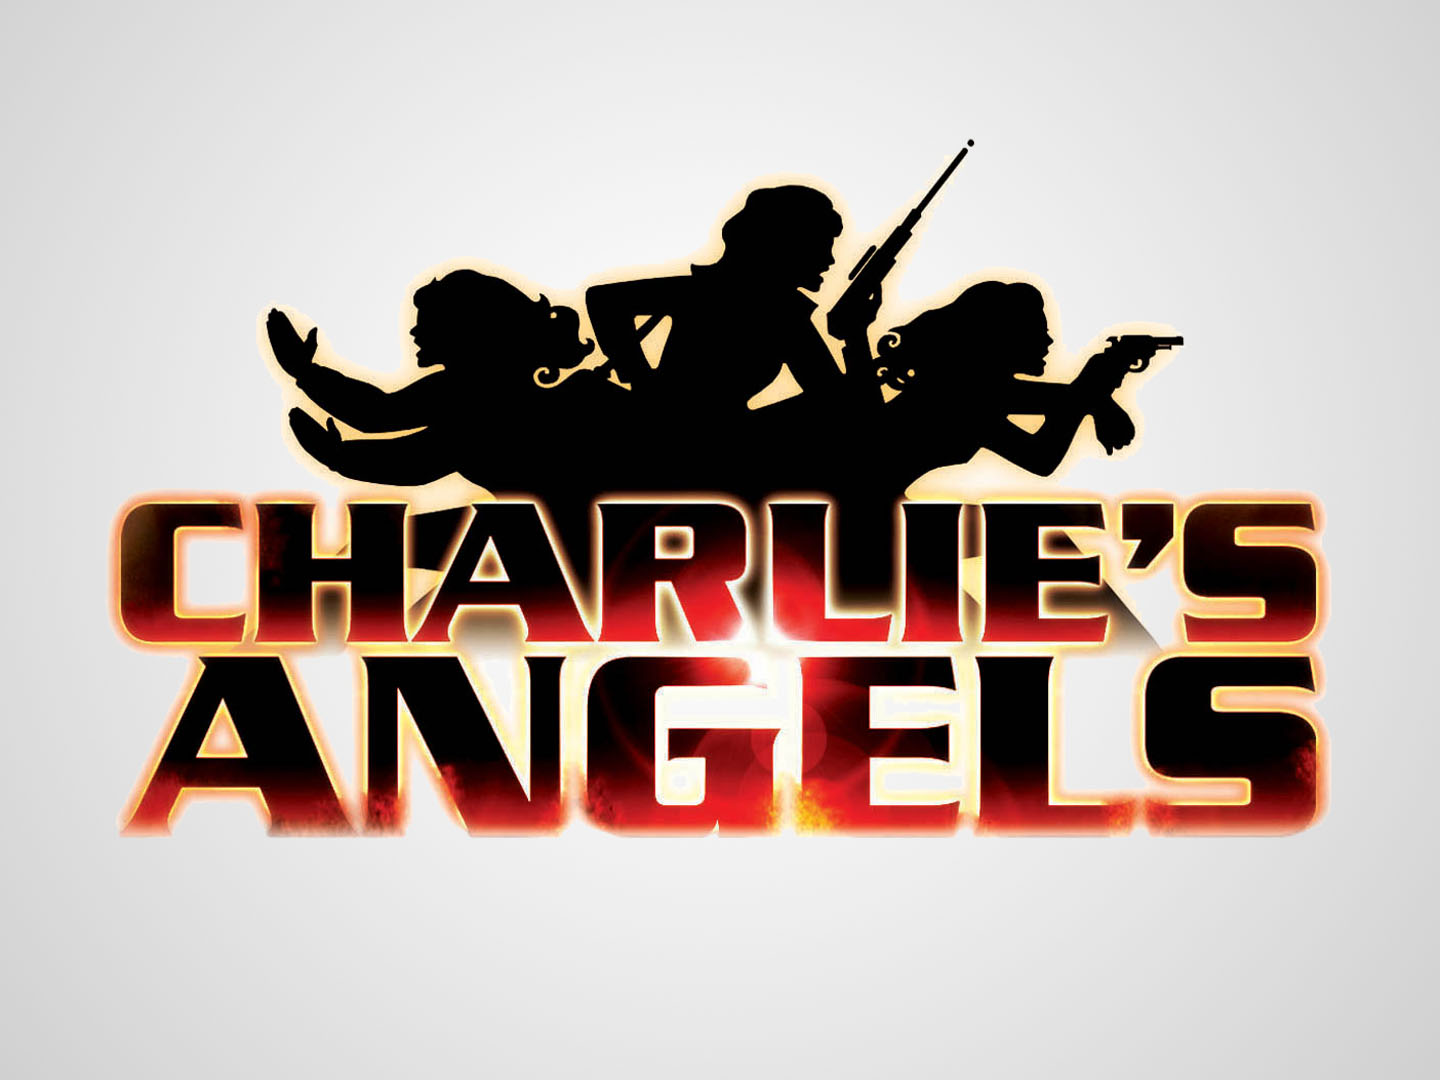 Charlie's Angels: logo Image Source: Sony Pictures Home Entertainment